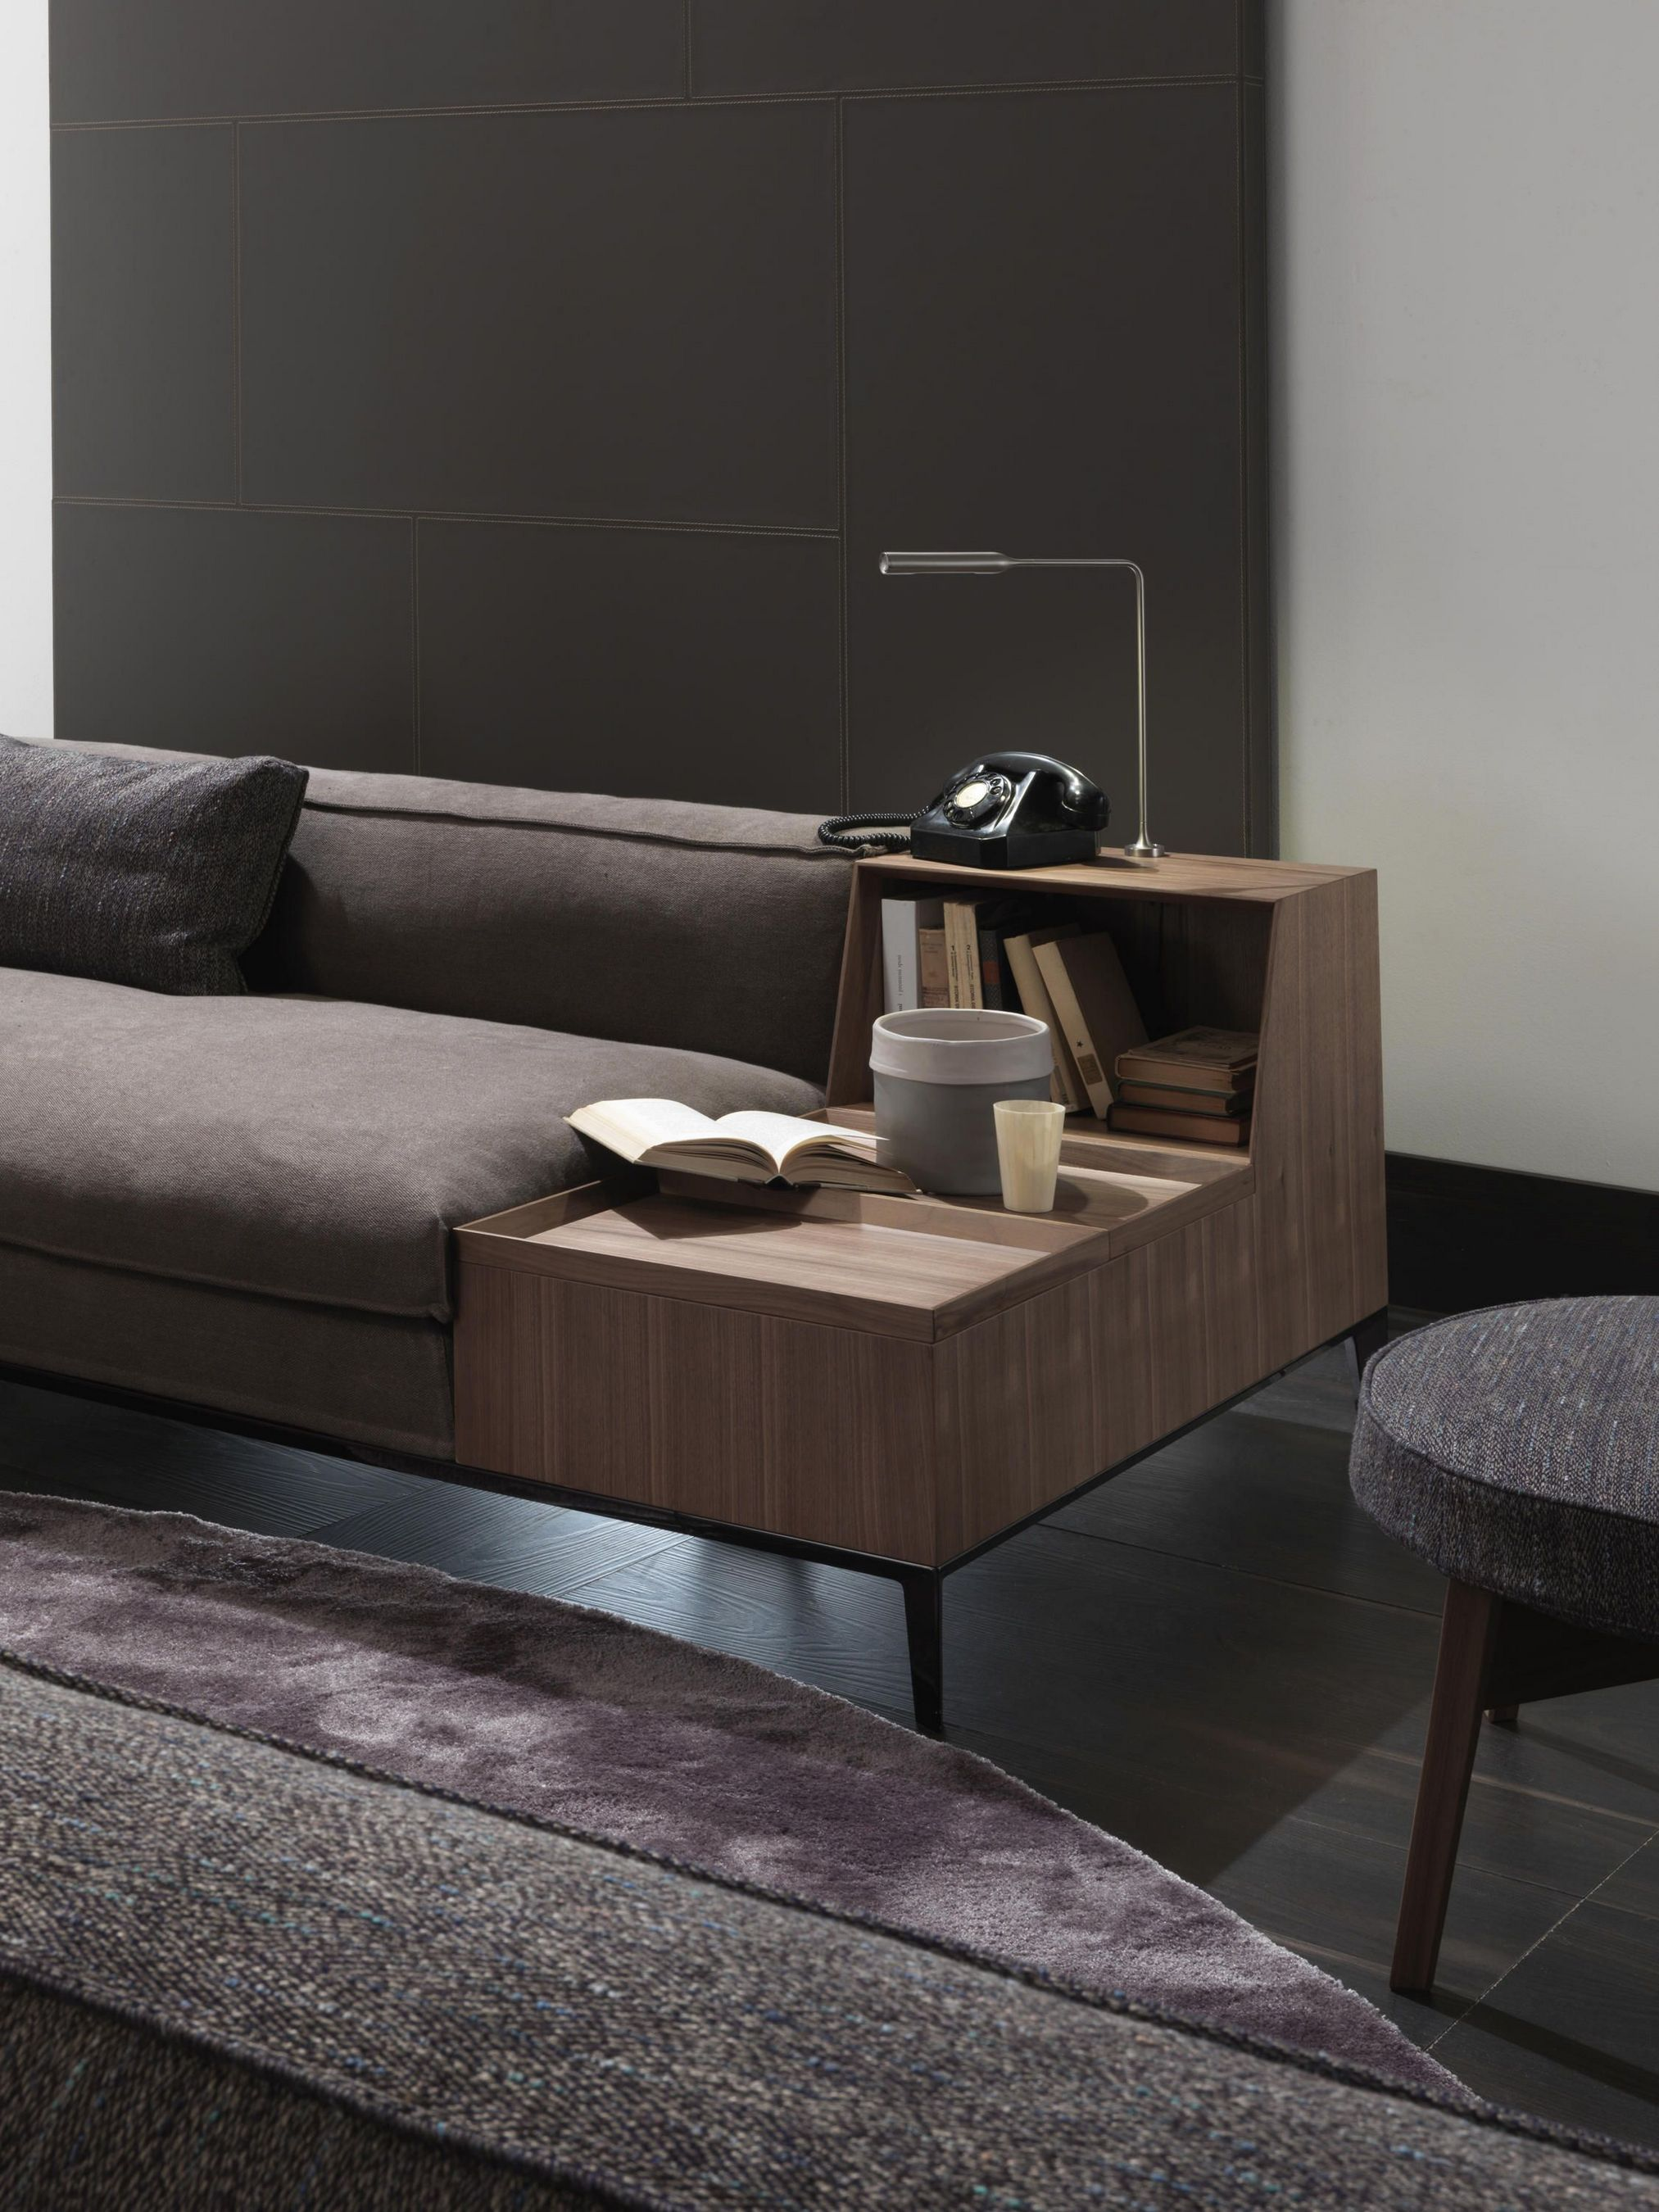 29 Modern Sofa And Furniture Ideas For Your Home Or Office Inspira Spaces Furniture Modern Sofa Sofa Design